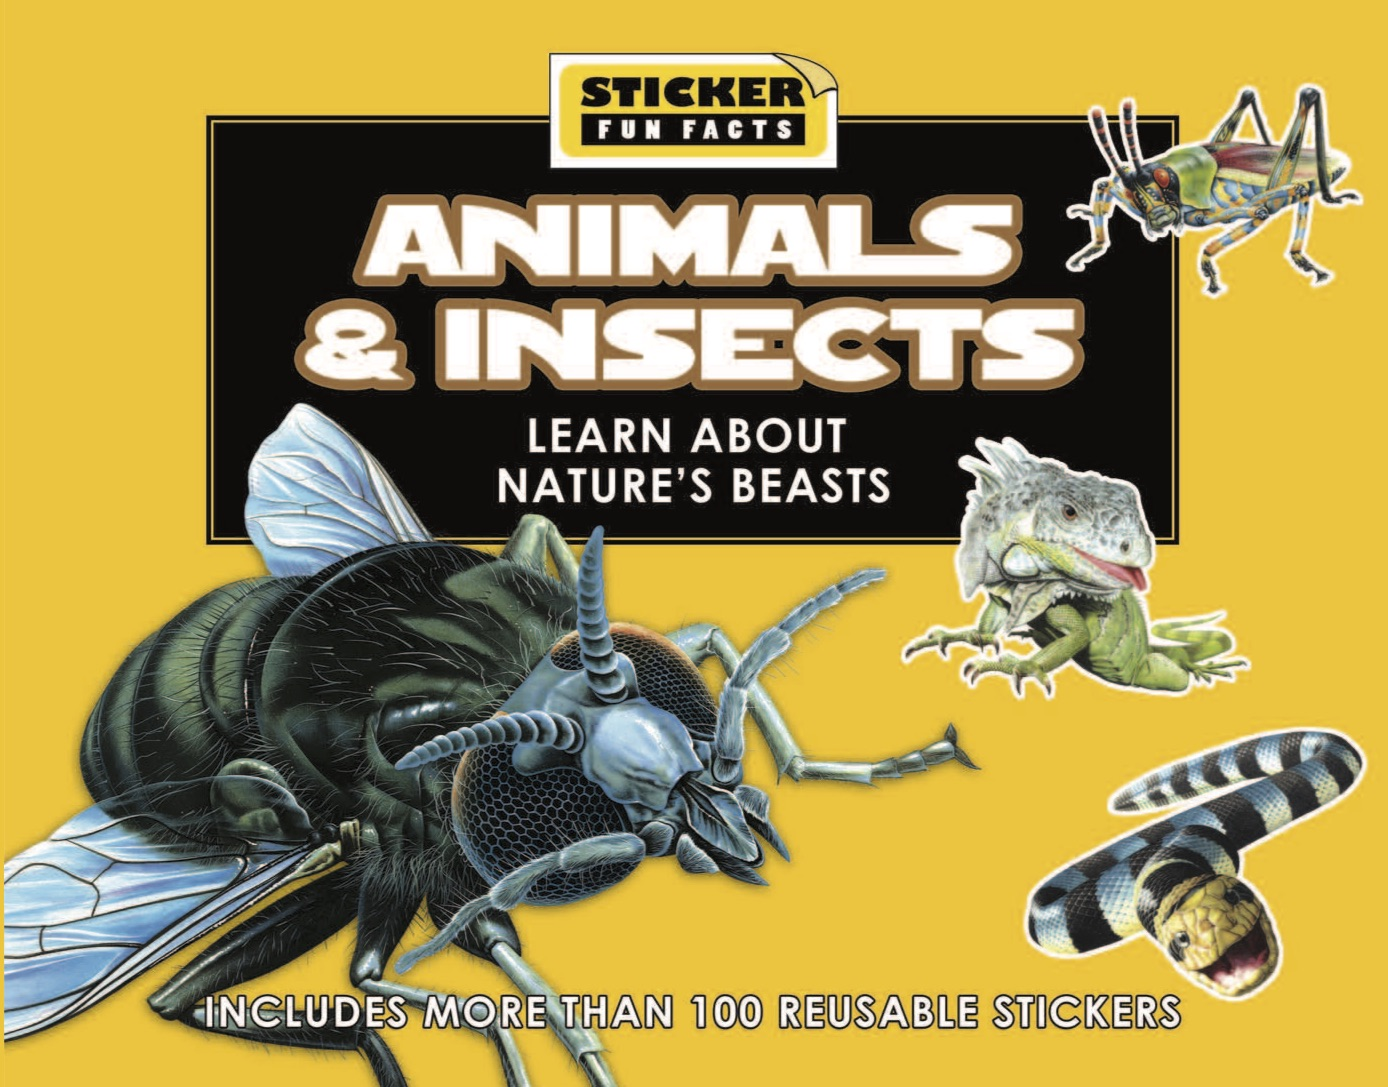 Sticker Fun Facts: Animals & Insects